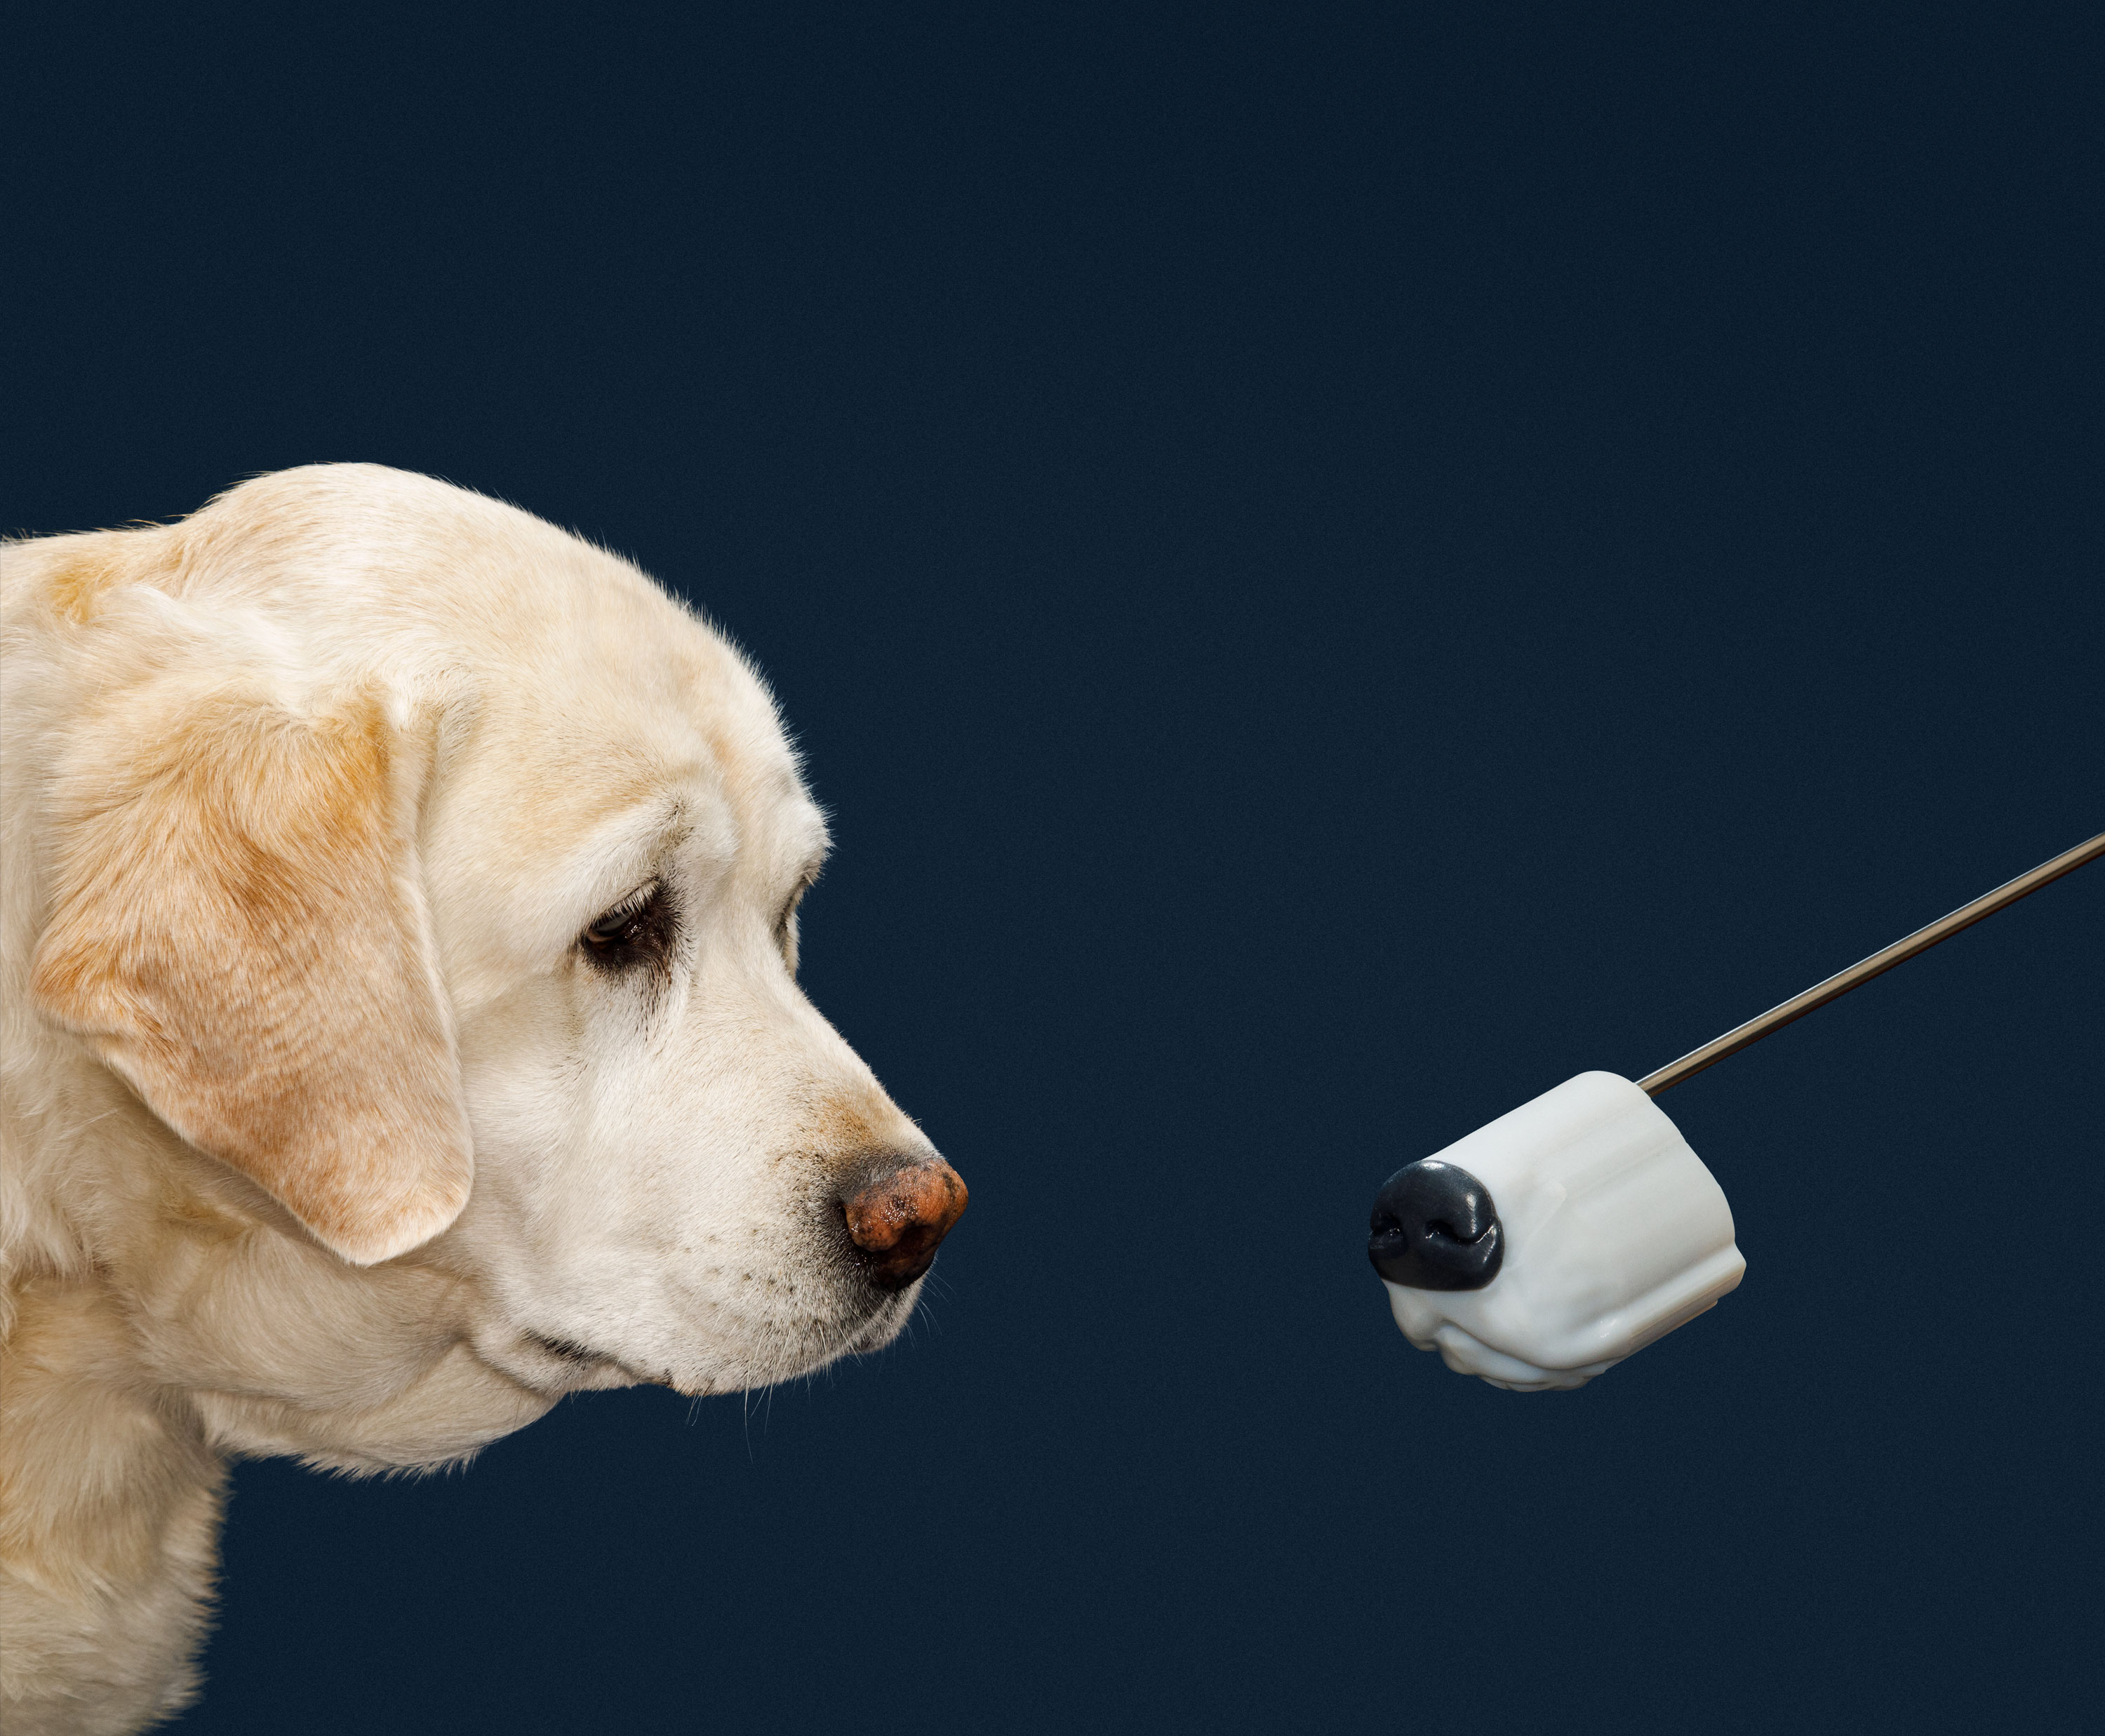 Why explosives detectors still can't beat a dog's nose